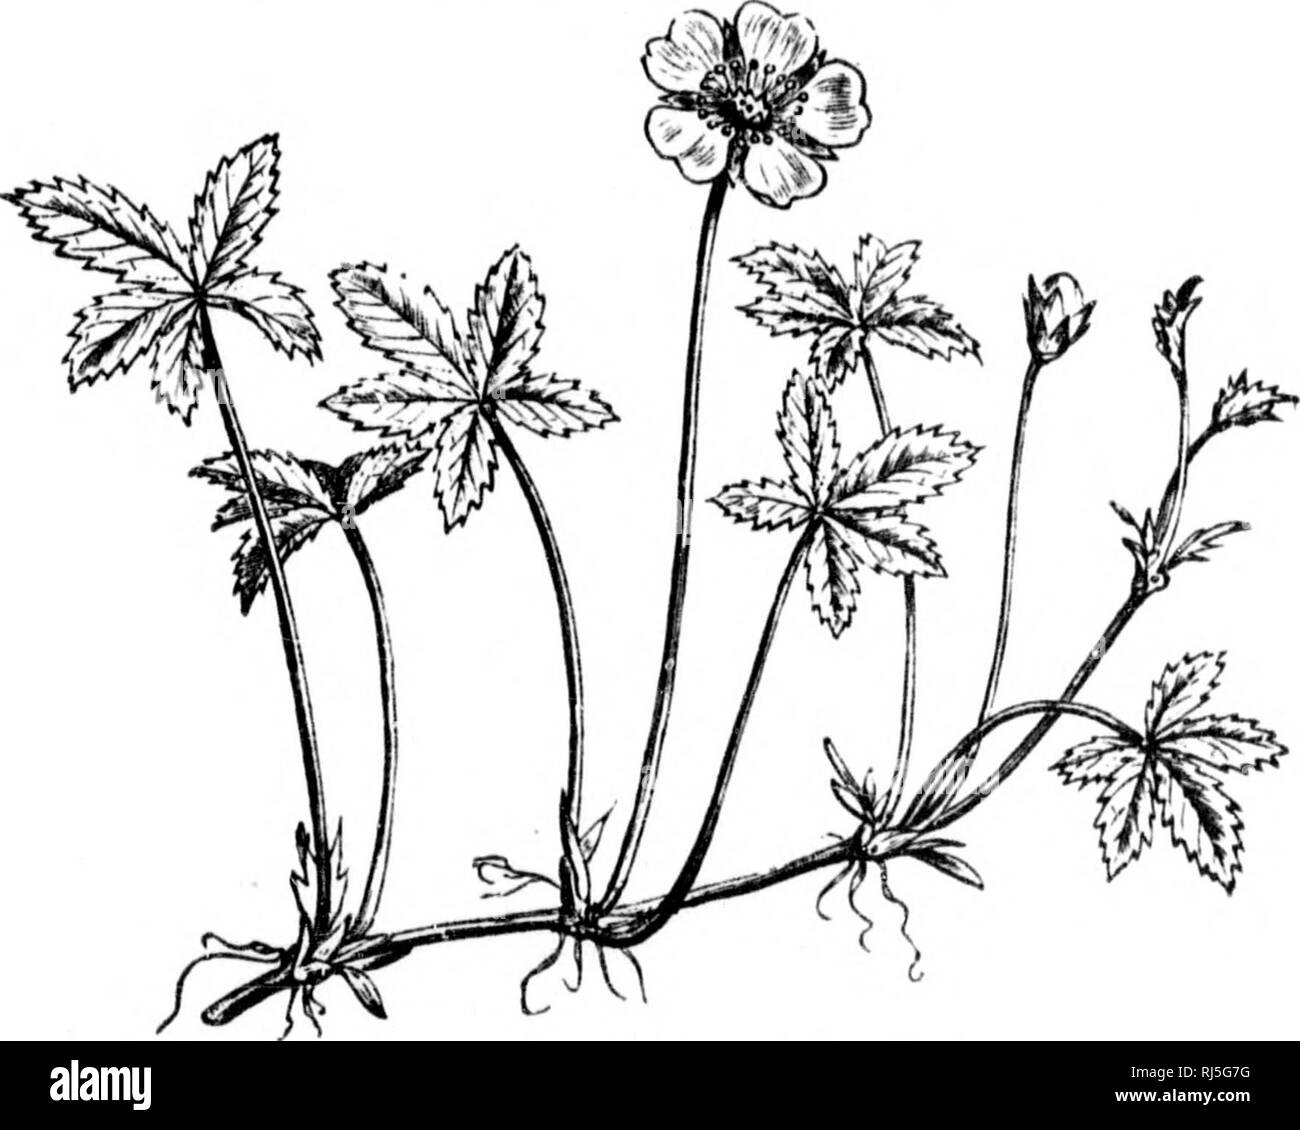 the mon black and white stock photos images page 8 alamy 97 Golf GTI flowers and their pedigrees microform flowers flowers fleurs fleurs